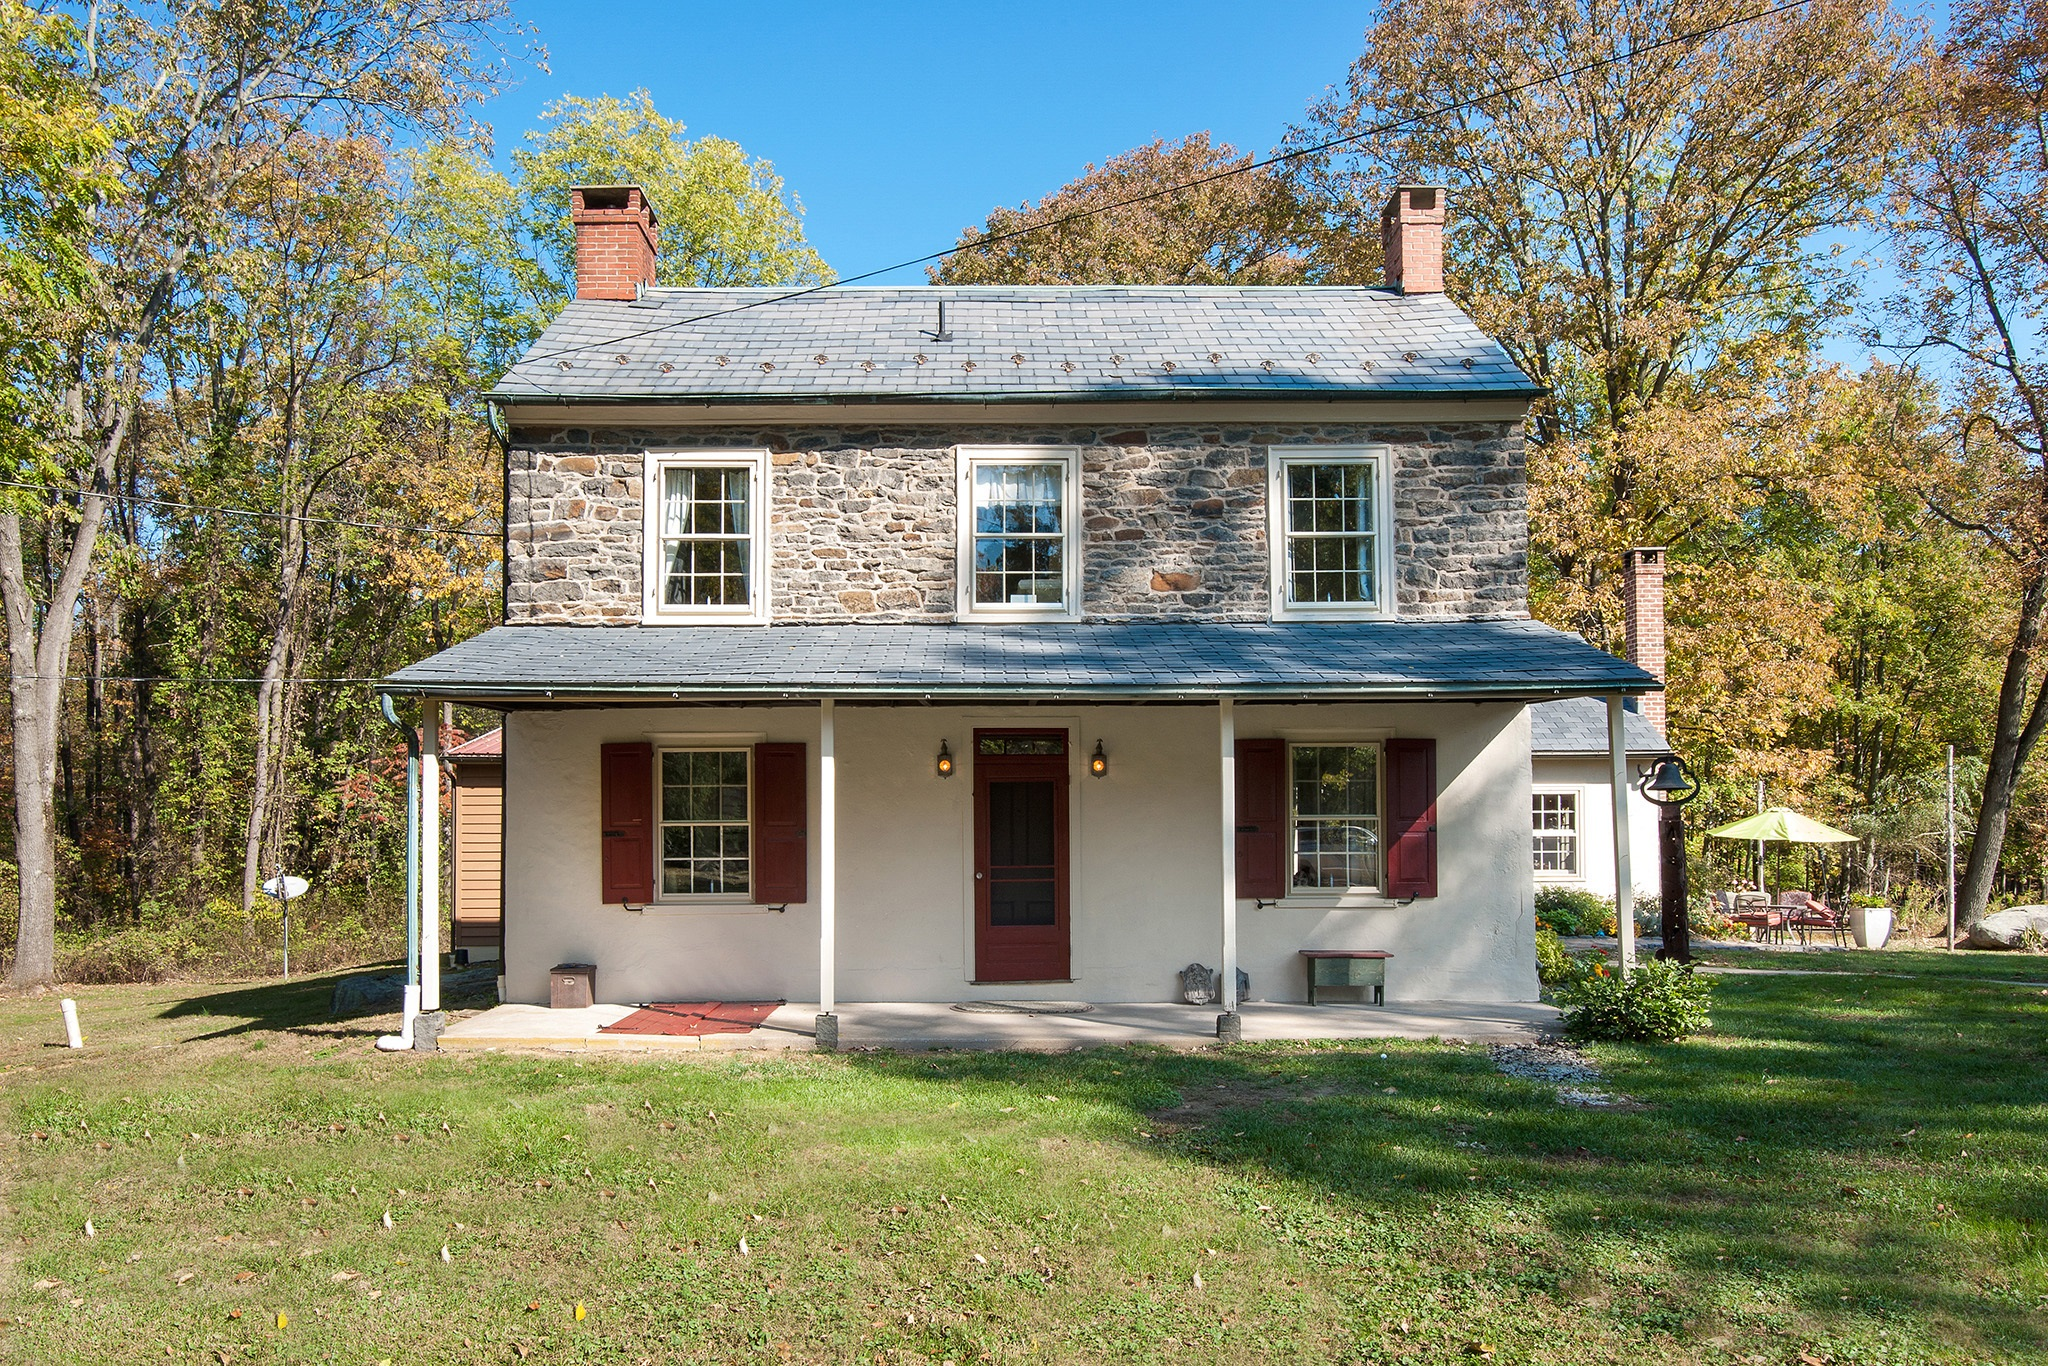 Stone Farm House in Bucks PA | #StoneFarmHouseBucksCounty | Stone Houses in Bucks County | #StoneHousesBucksCounty